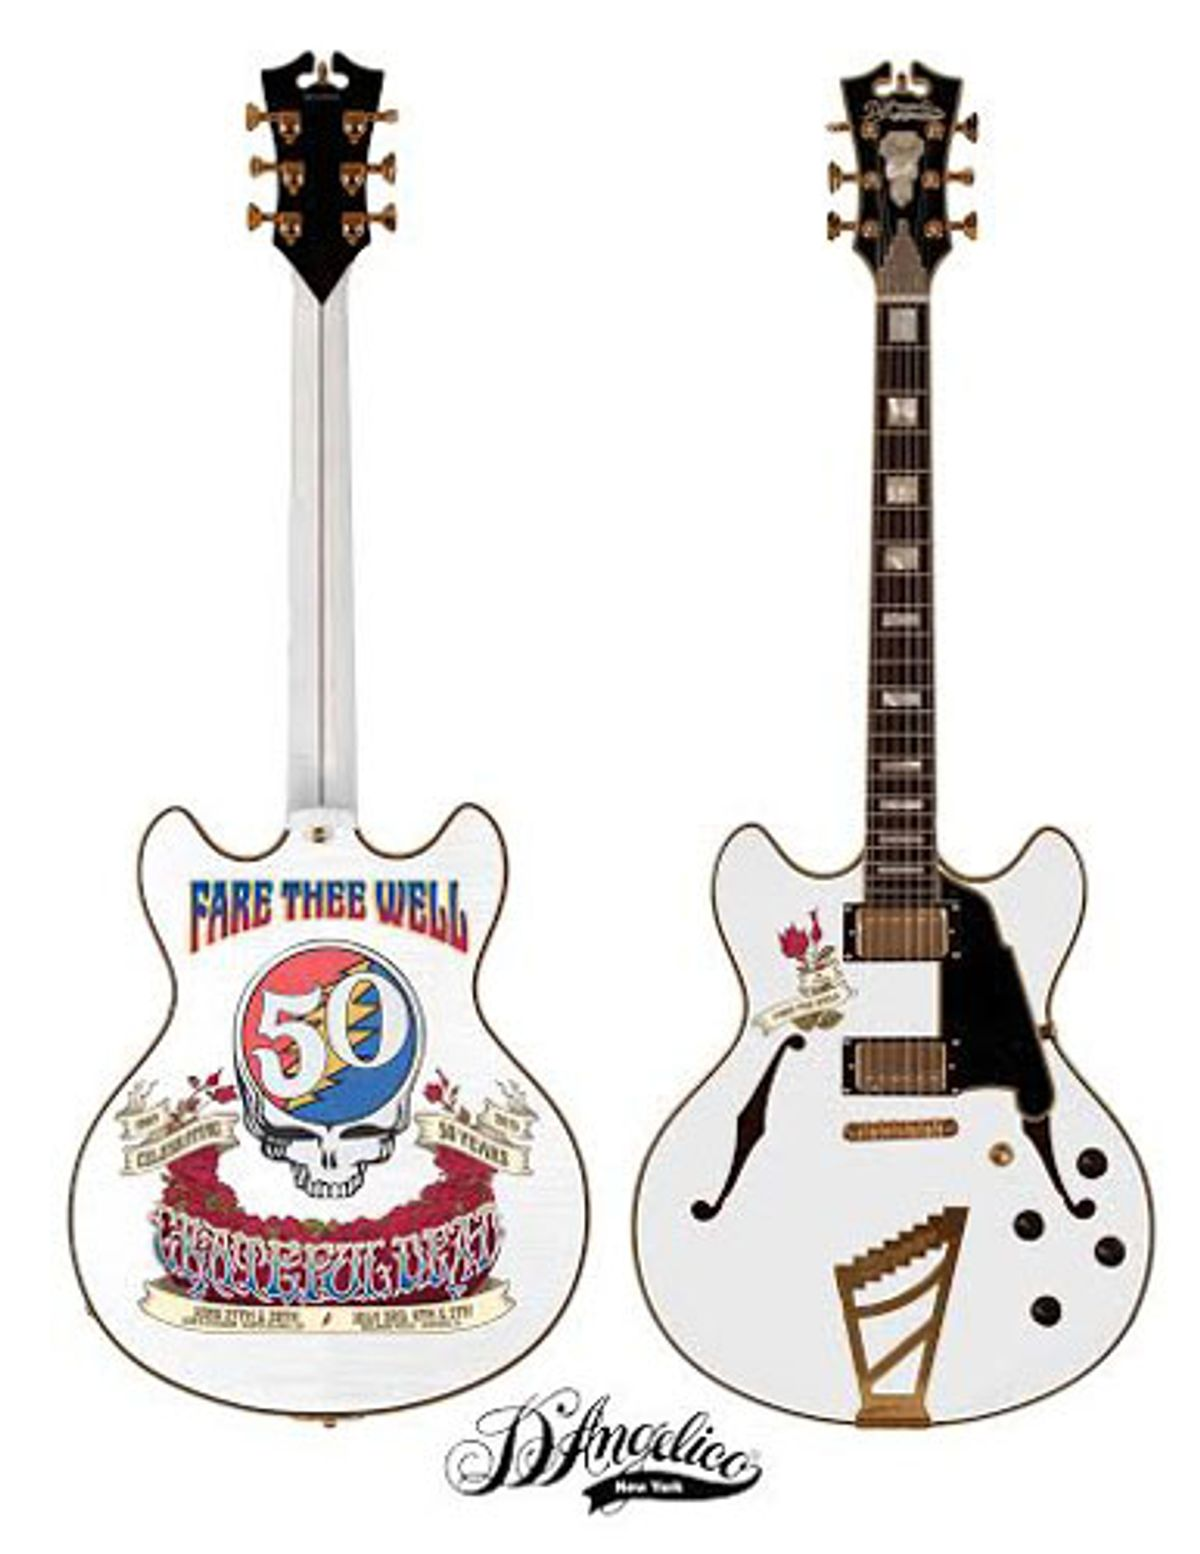 D'Angelico and Headcount Team Up for Grateful Dead Auction